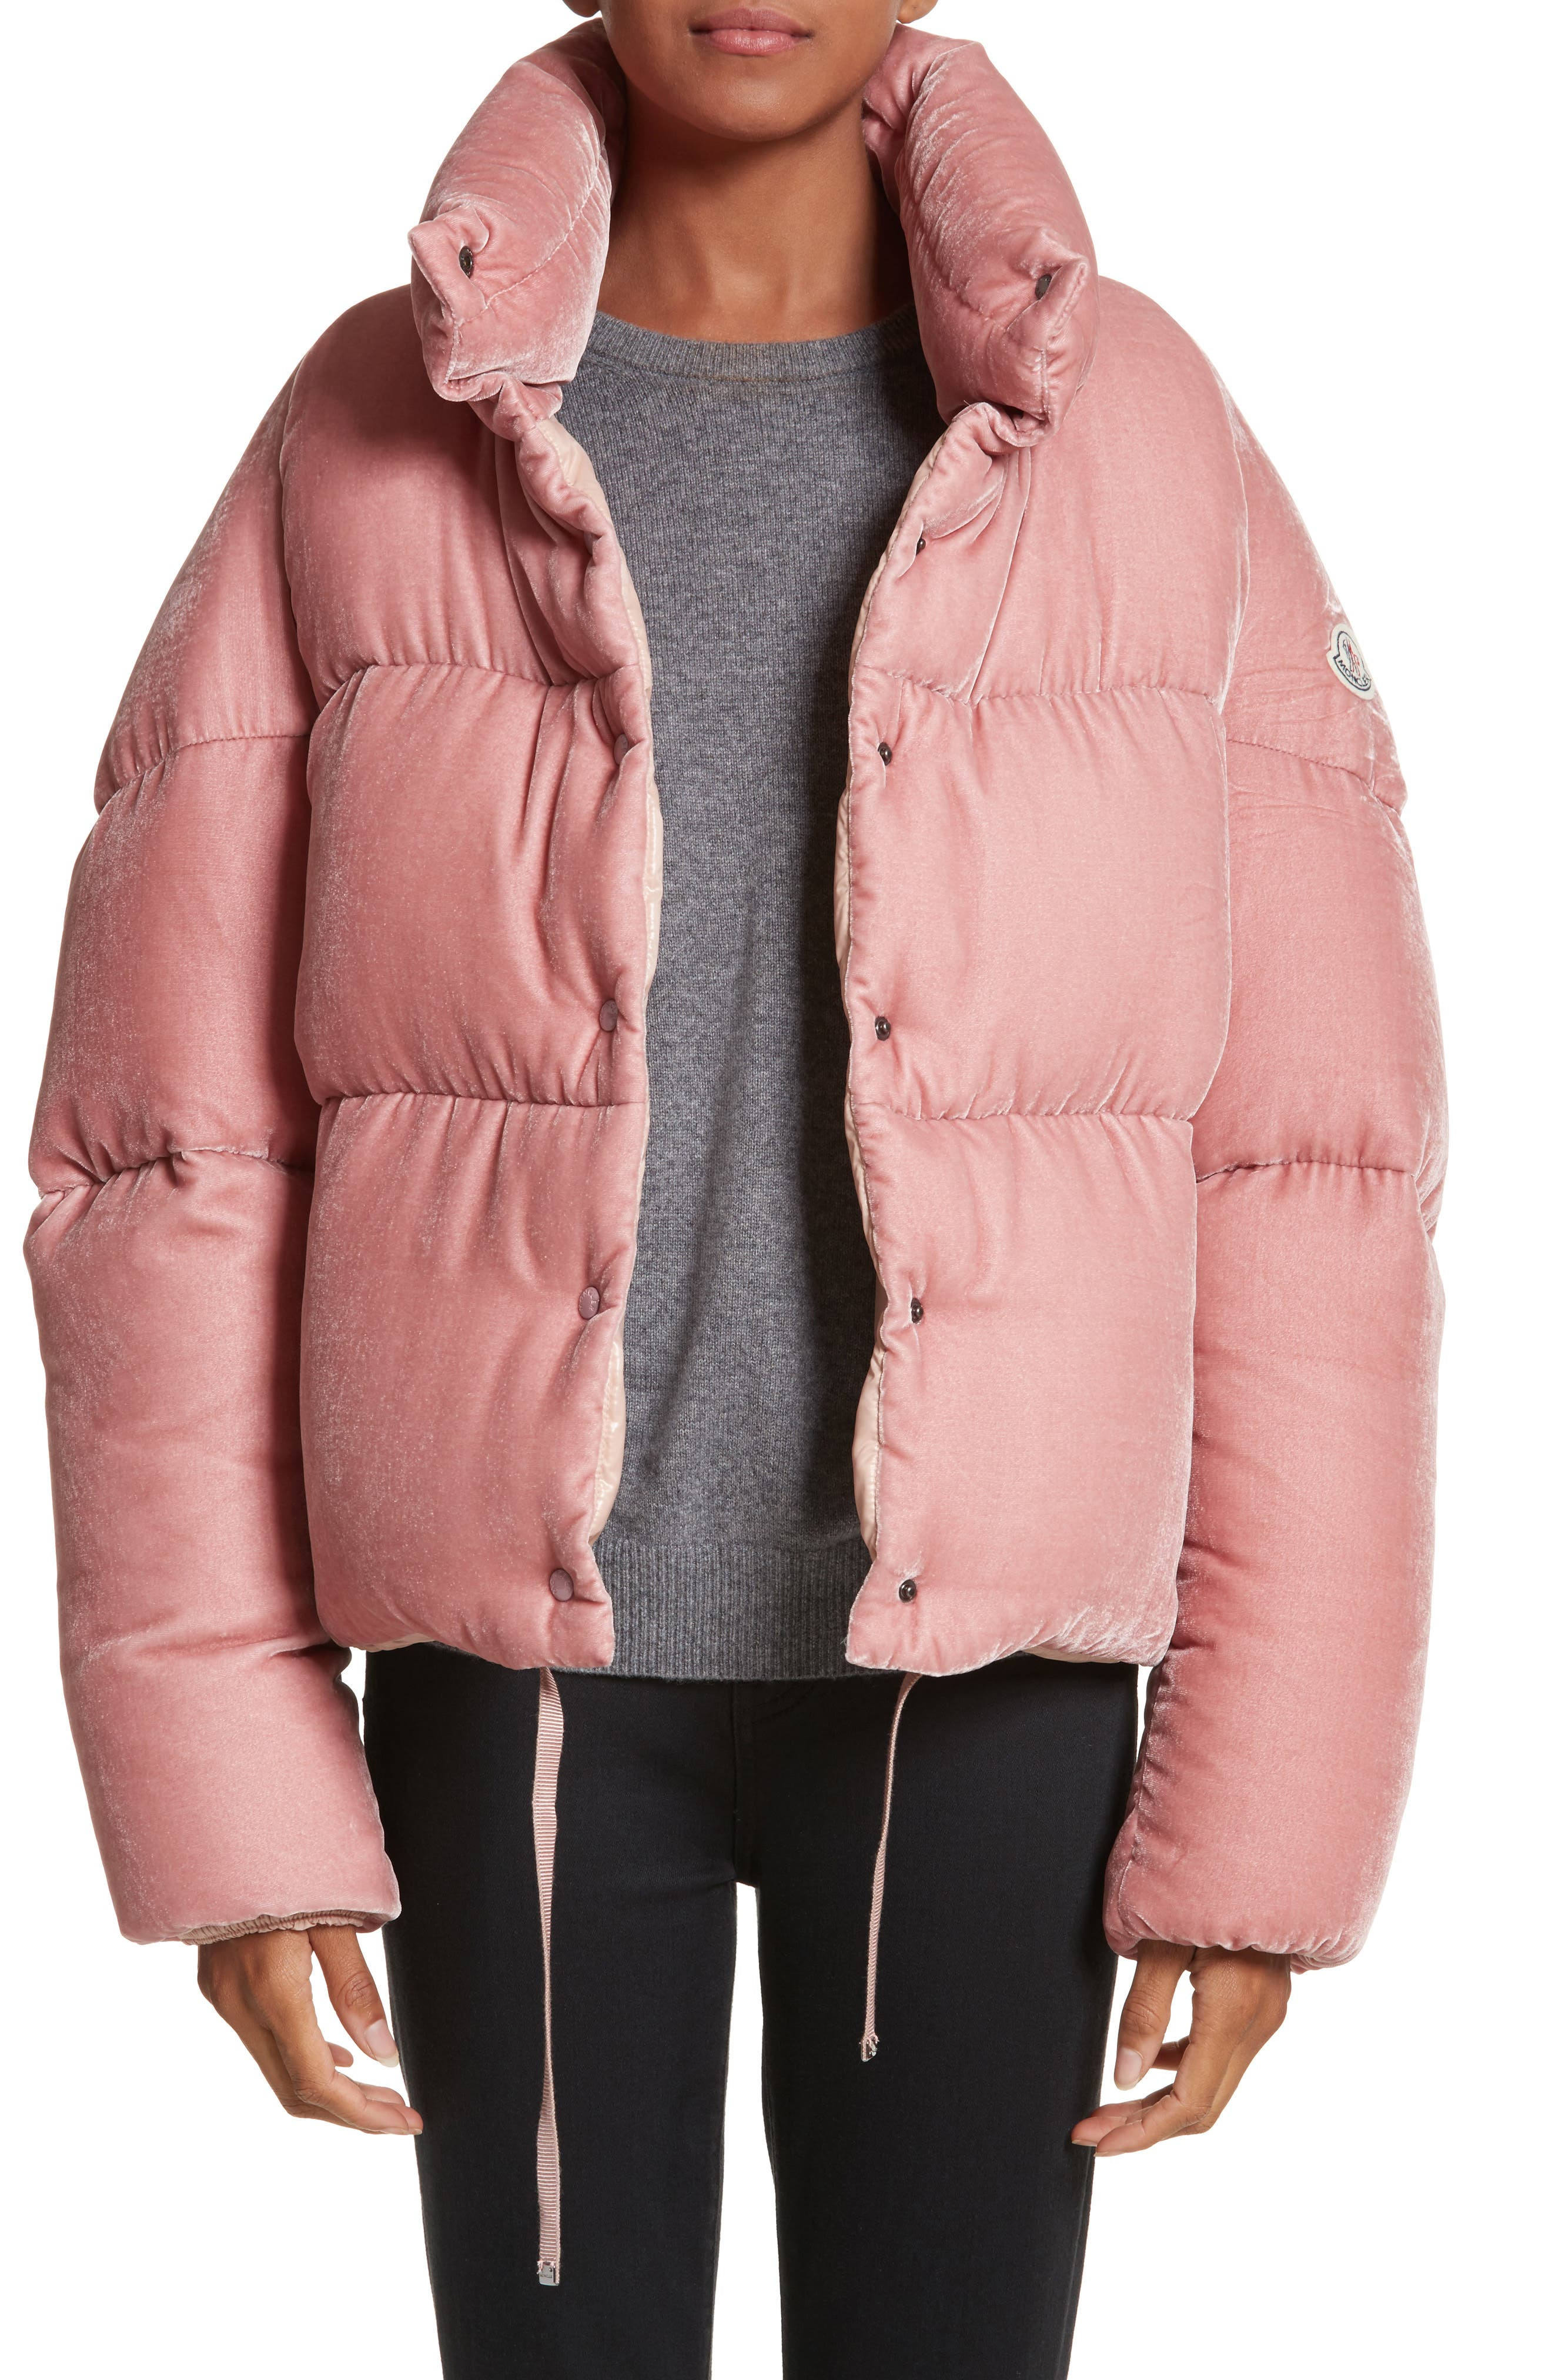 Cercis Velvet Quilted Down Puffer Coat,                         Main,                         color, Pink